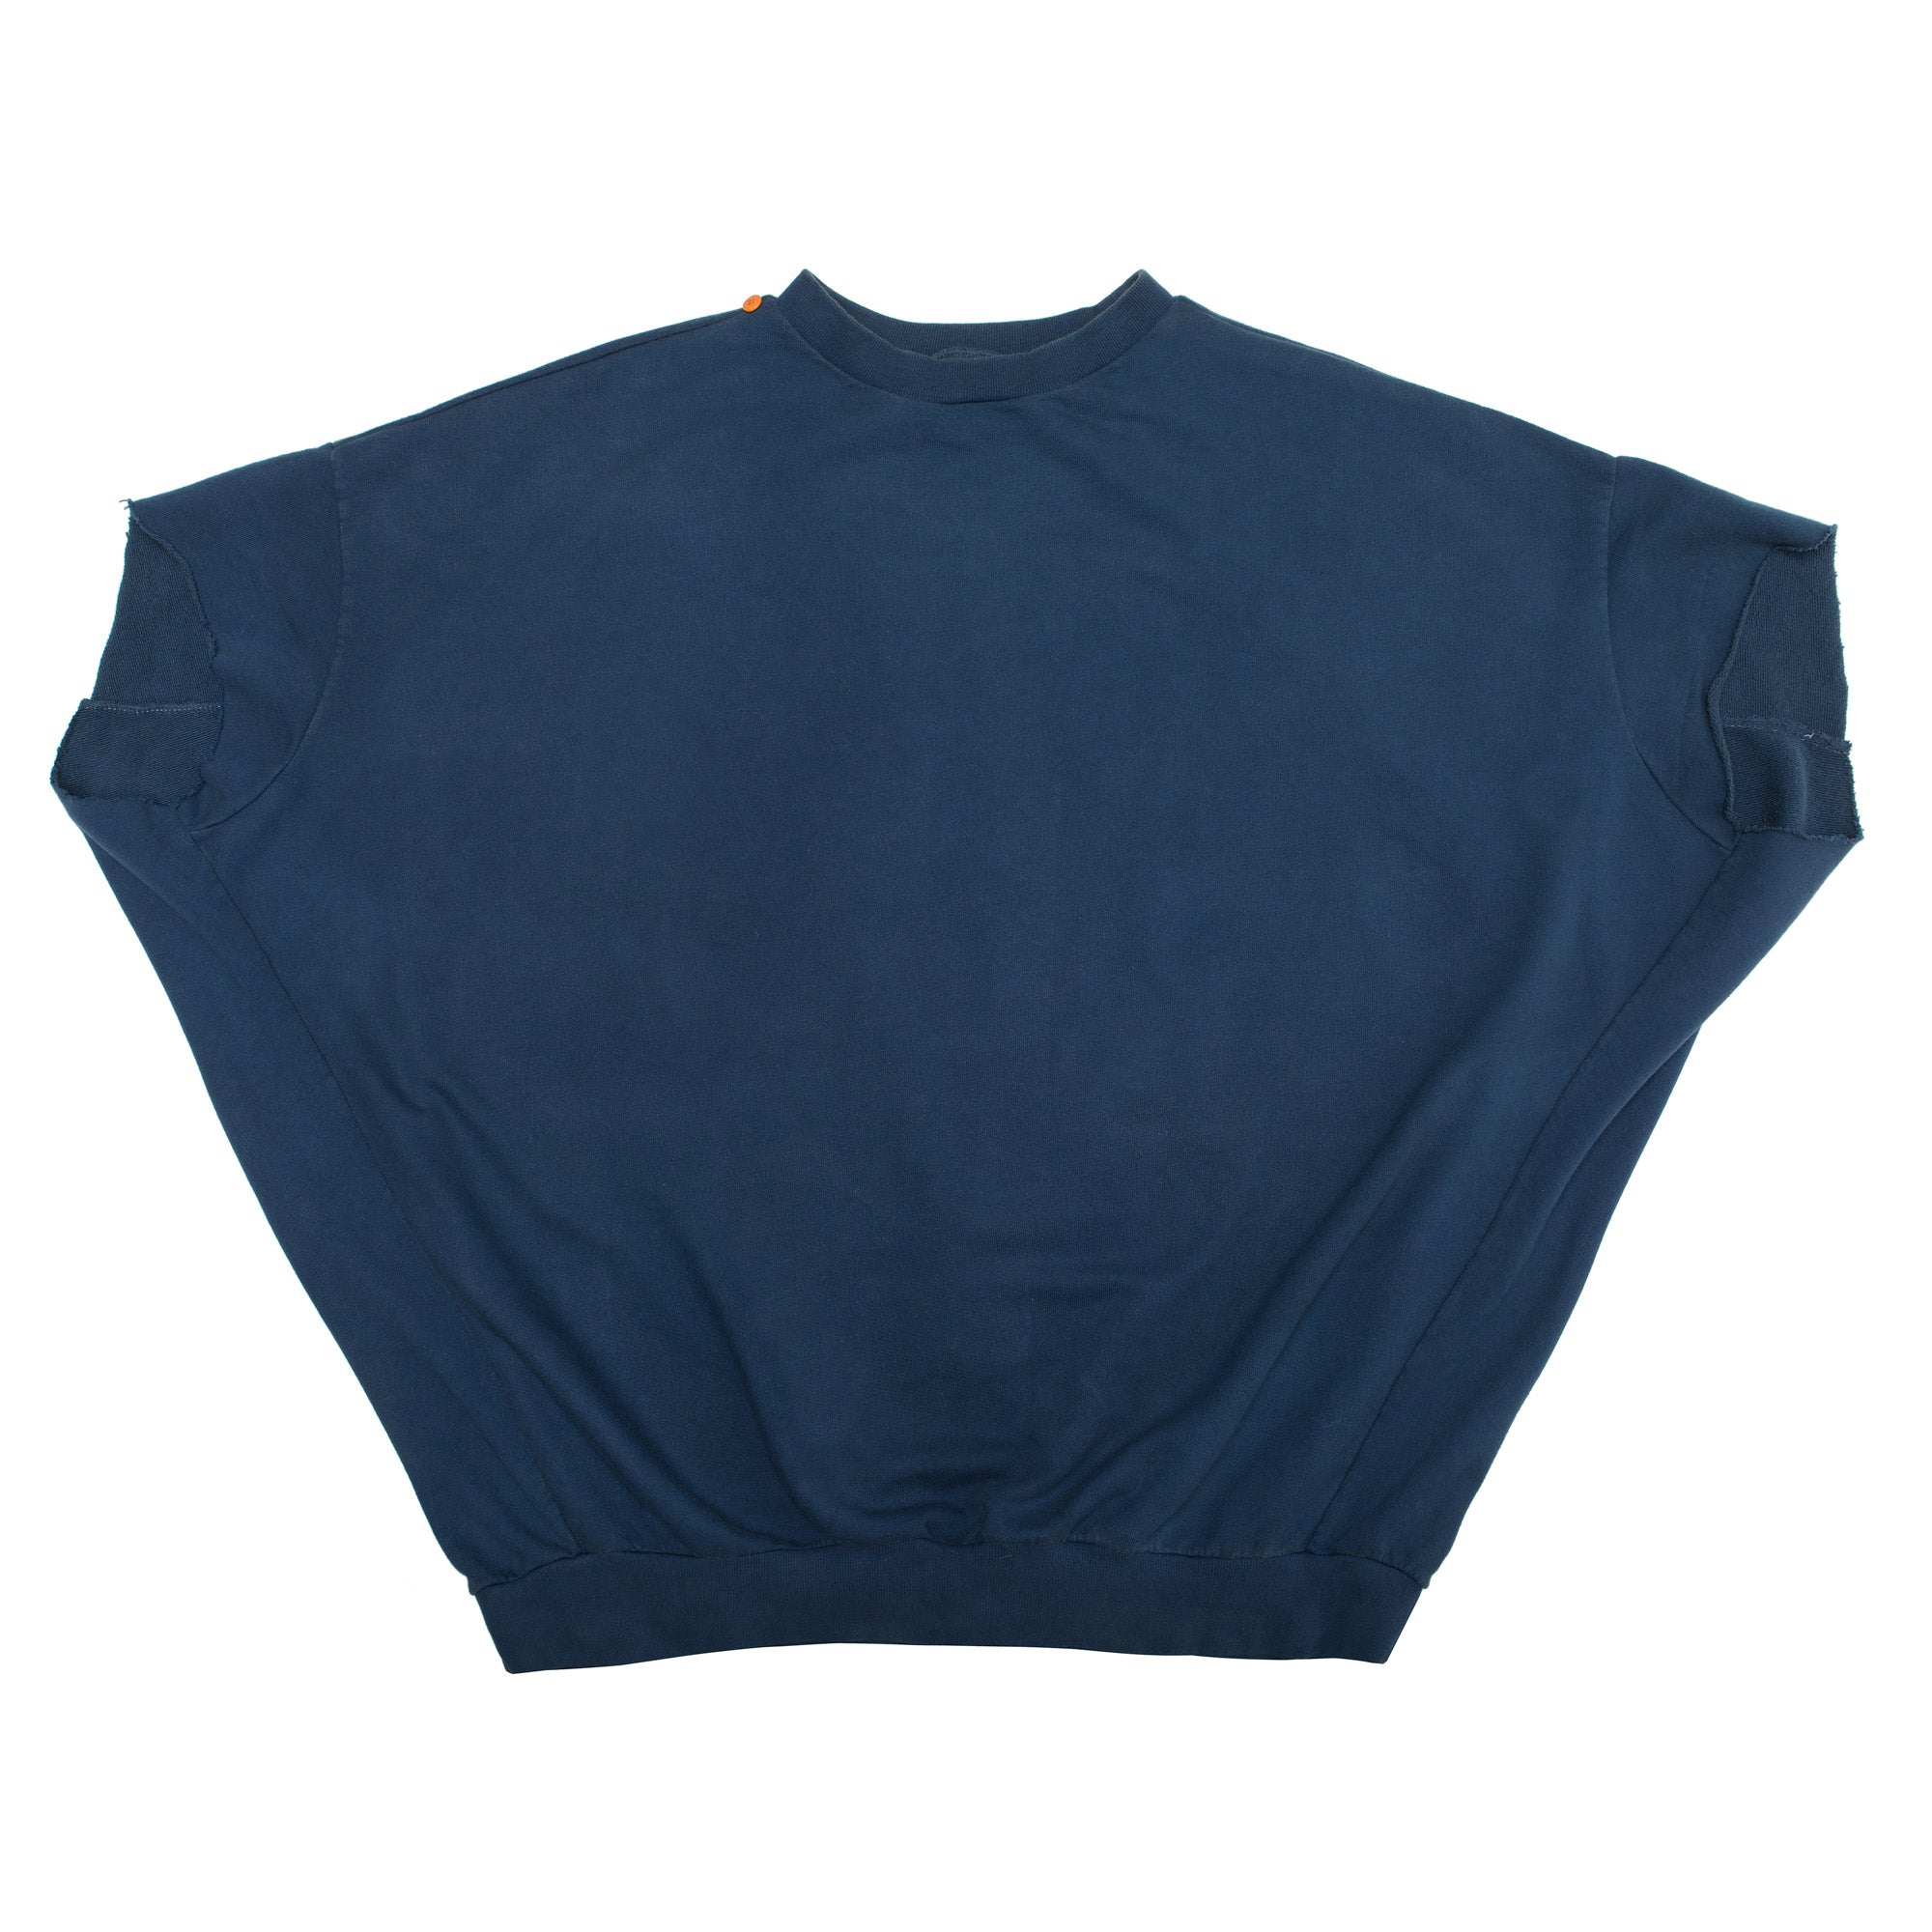 The Blue Short Sleeve Sweatshirt